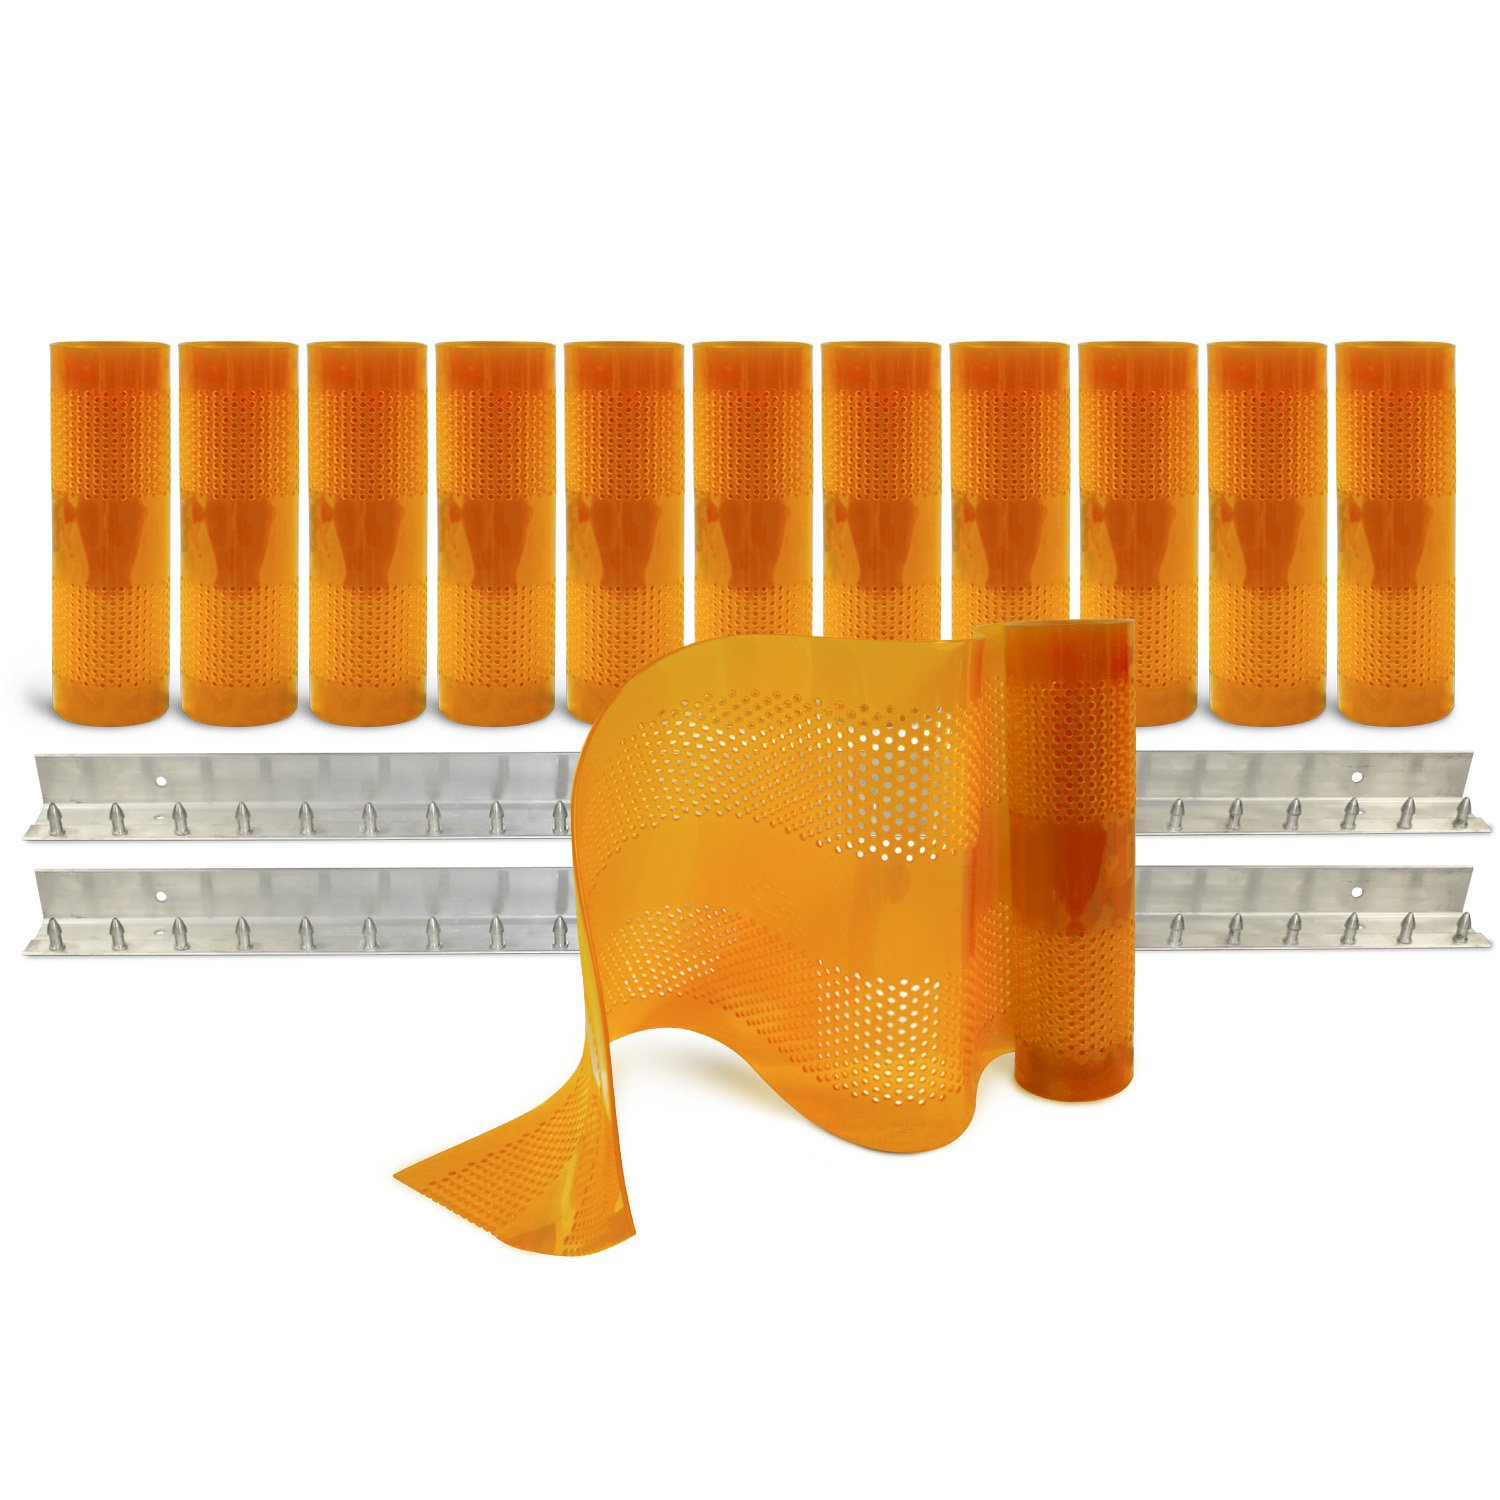 Aleco 443628 Clear-Flex II Standard AirStream Perforated PVC Strip Door Kit with MaxBullet Aluminum Mounting Hardware, 12'' Width x 120'' Height x 0.12'' Thick, Amber